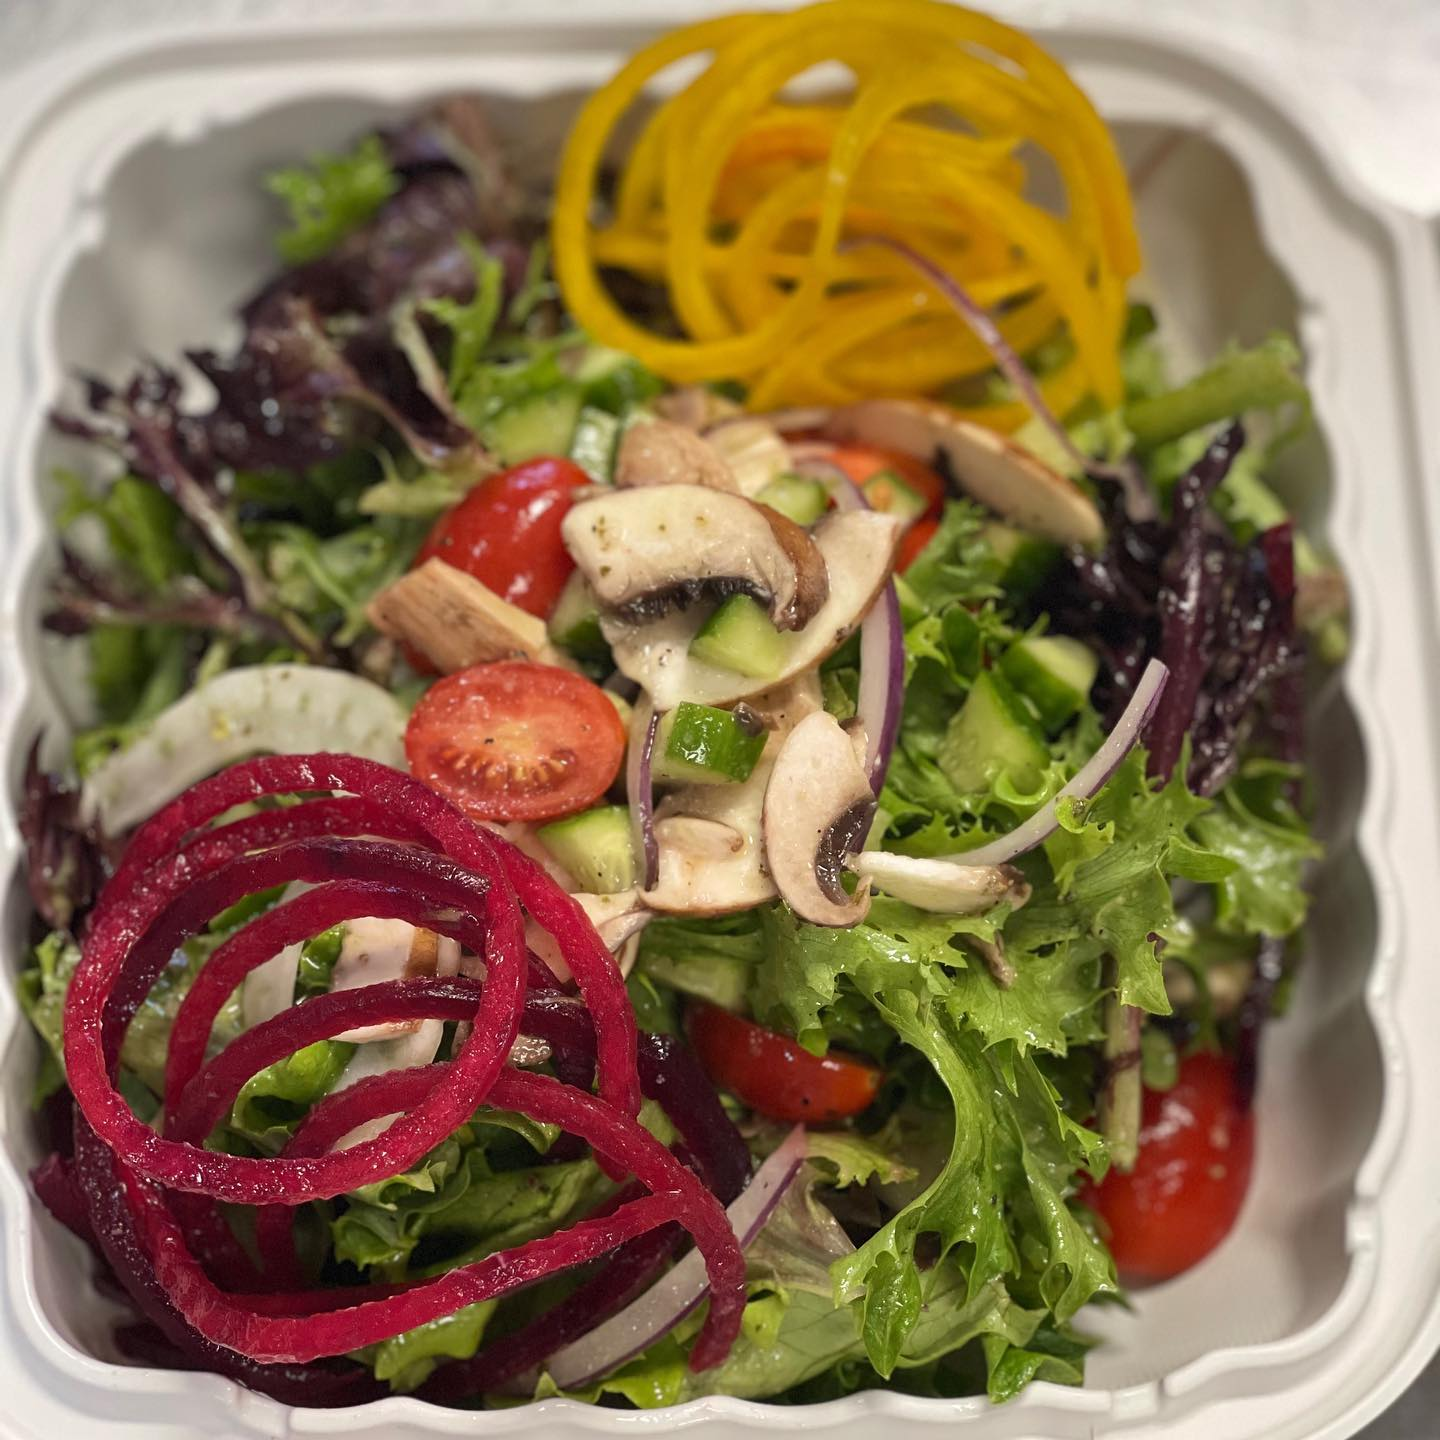 mixed greens topped with tomatoes, onions, mushrooms